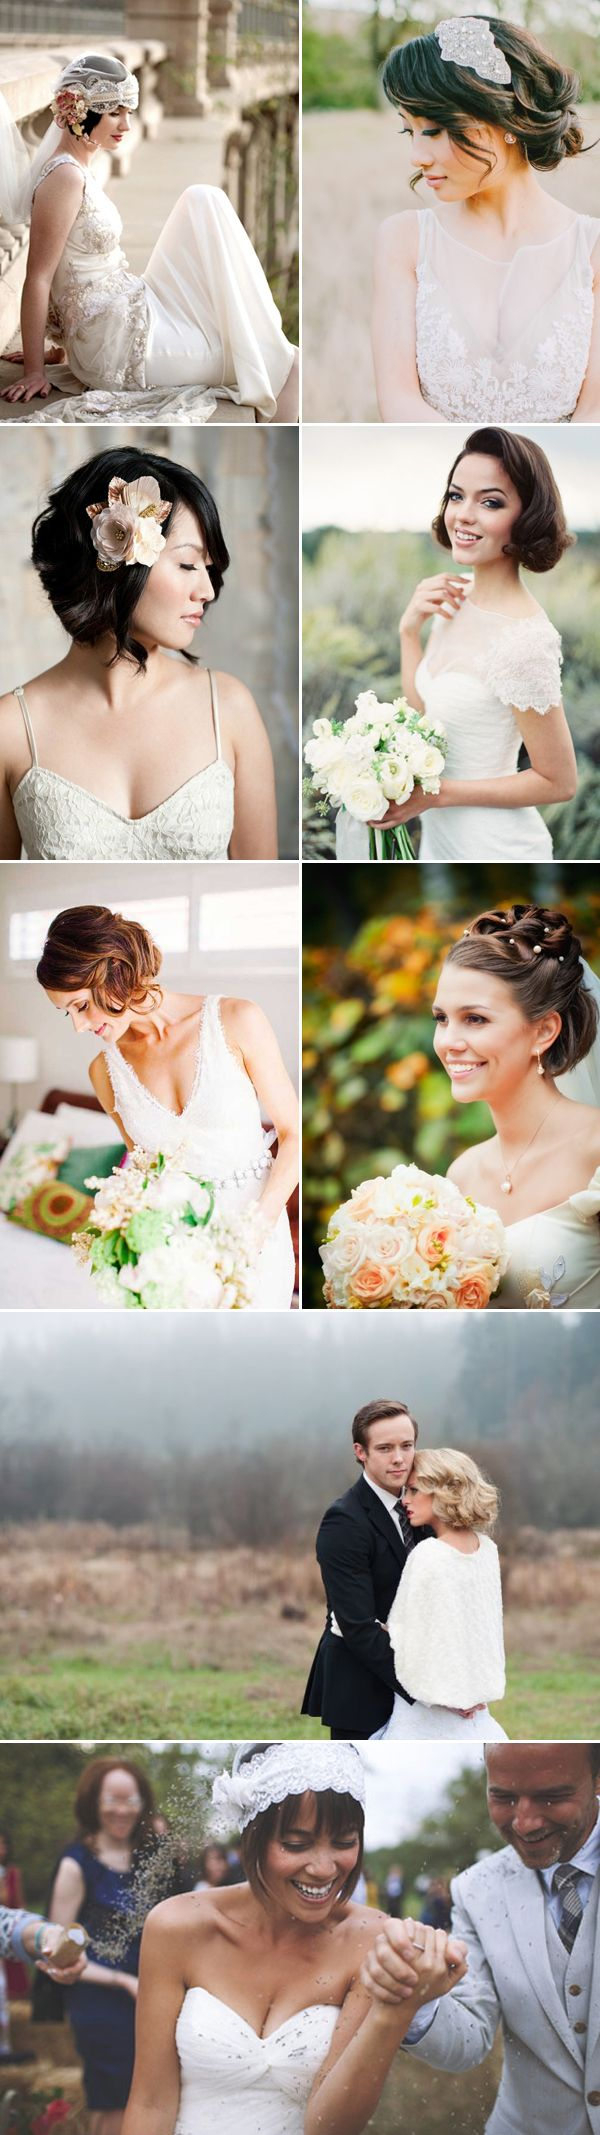 Vintage short hairstyles for wedding / http://www.deerpearlflowers.com/48-chic-wedding-hairstyles-for-short-hair/